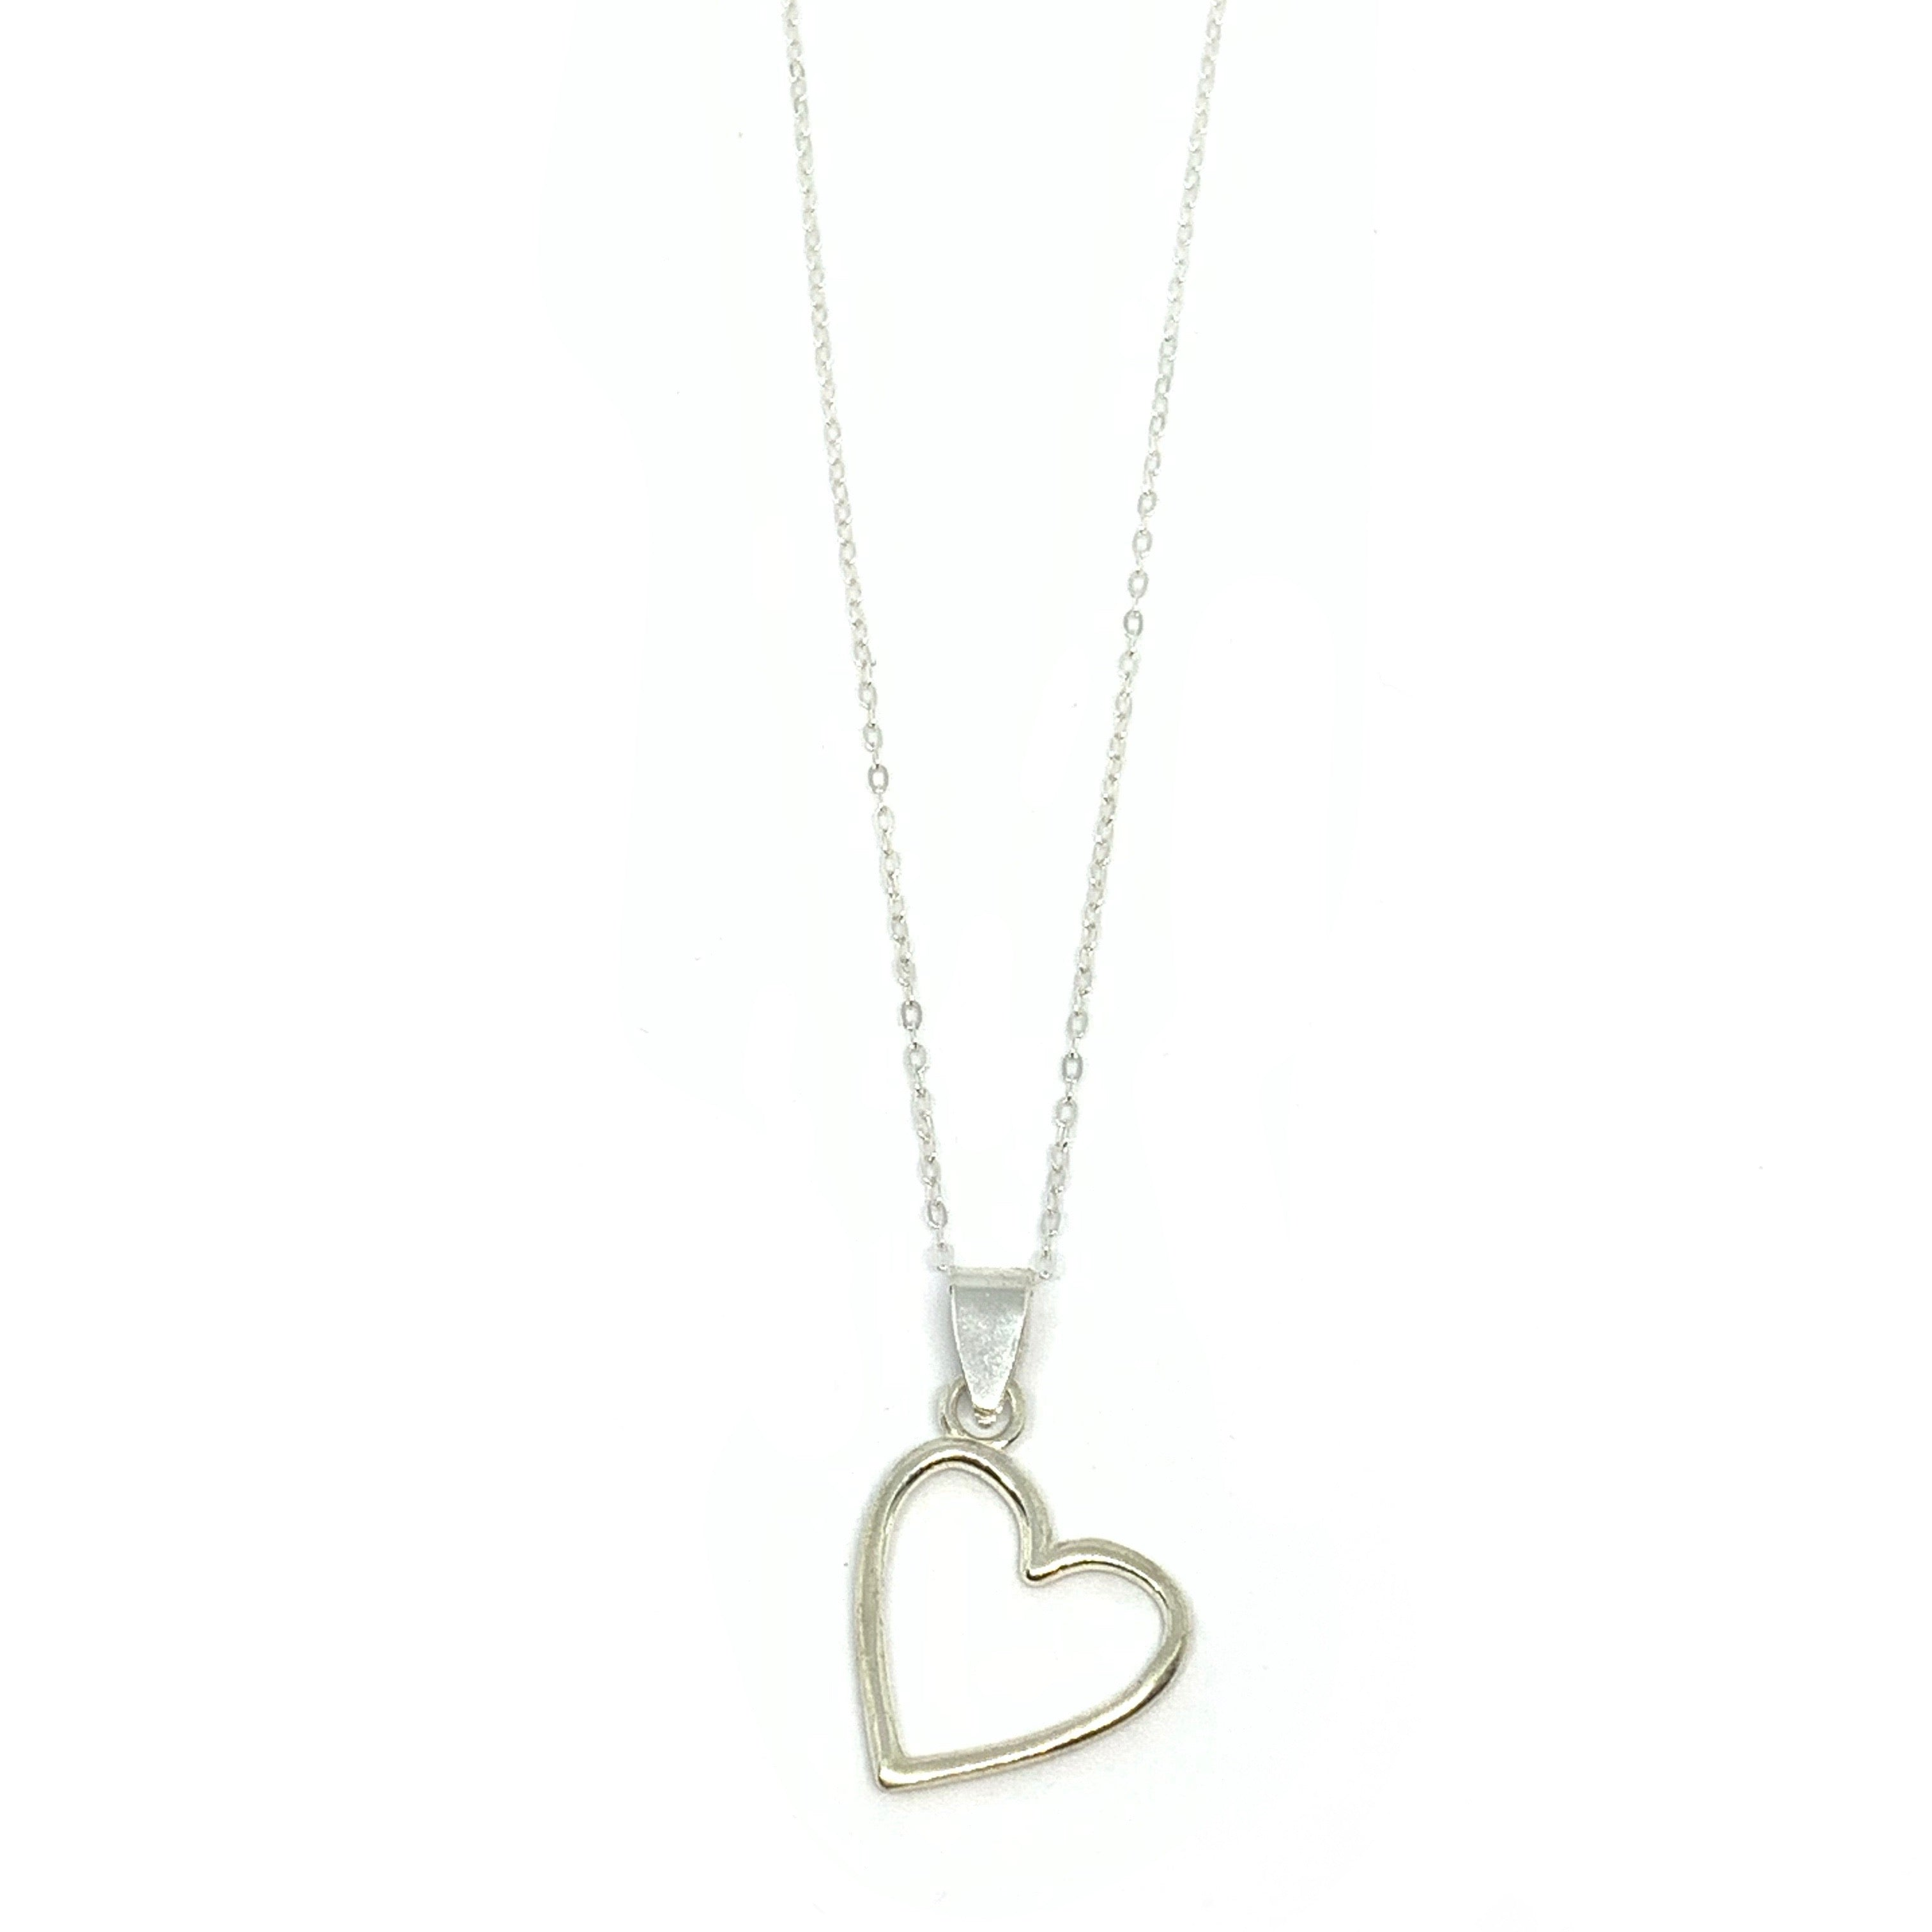 Handcrafted Sterling SIlver | Heart Necklace | SEAMS Jewelry